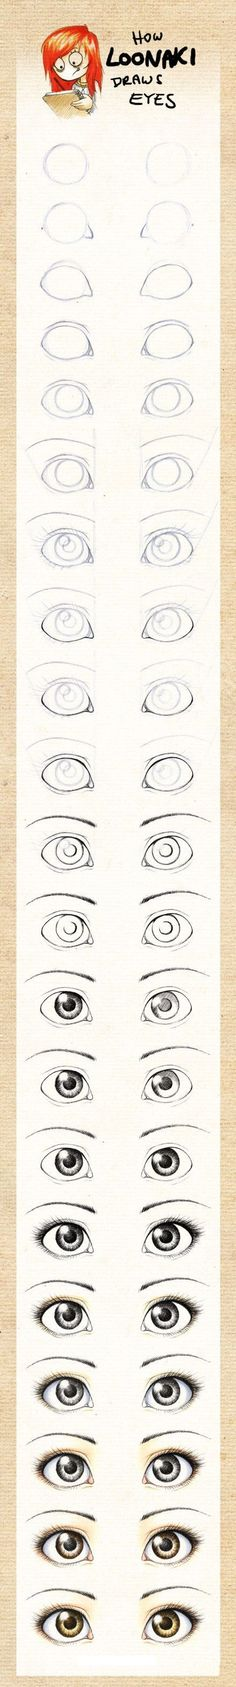 How to draw eyes...because after all these years, I still wish I could draw. And attempt it weekly. #Fail 실제바카라실제바카라실제바카라실제바카라실제바카라실제바카라실제바카라실제바카라실제바카라실제바카라실제바카라실제바카라실제바카라실제바카라실제바카라실제바카라실제바카라실제바카라실제바카라실제바카라실제바카라실제바카라